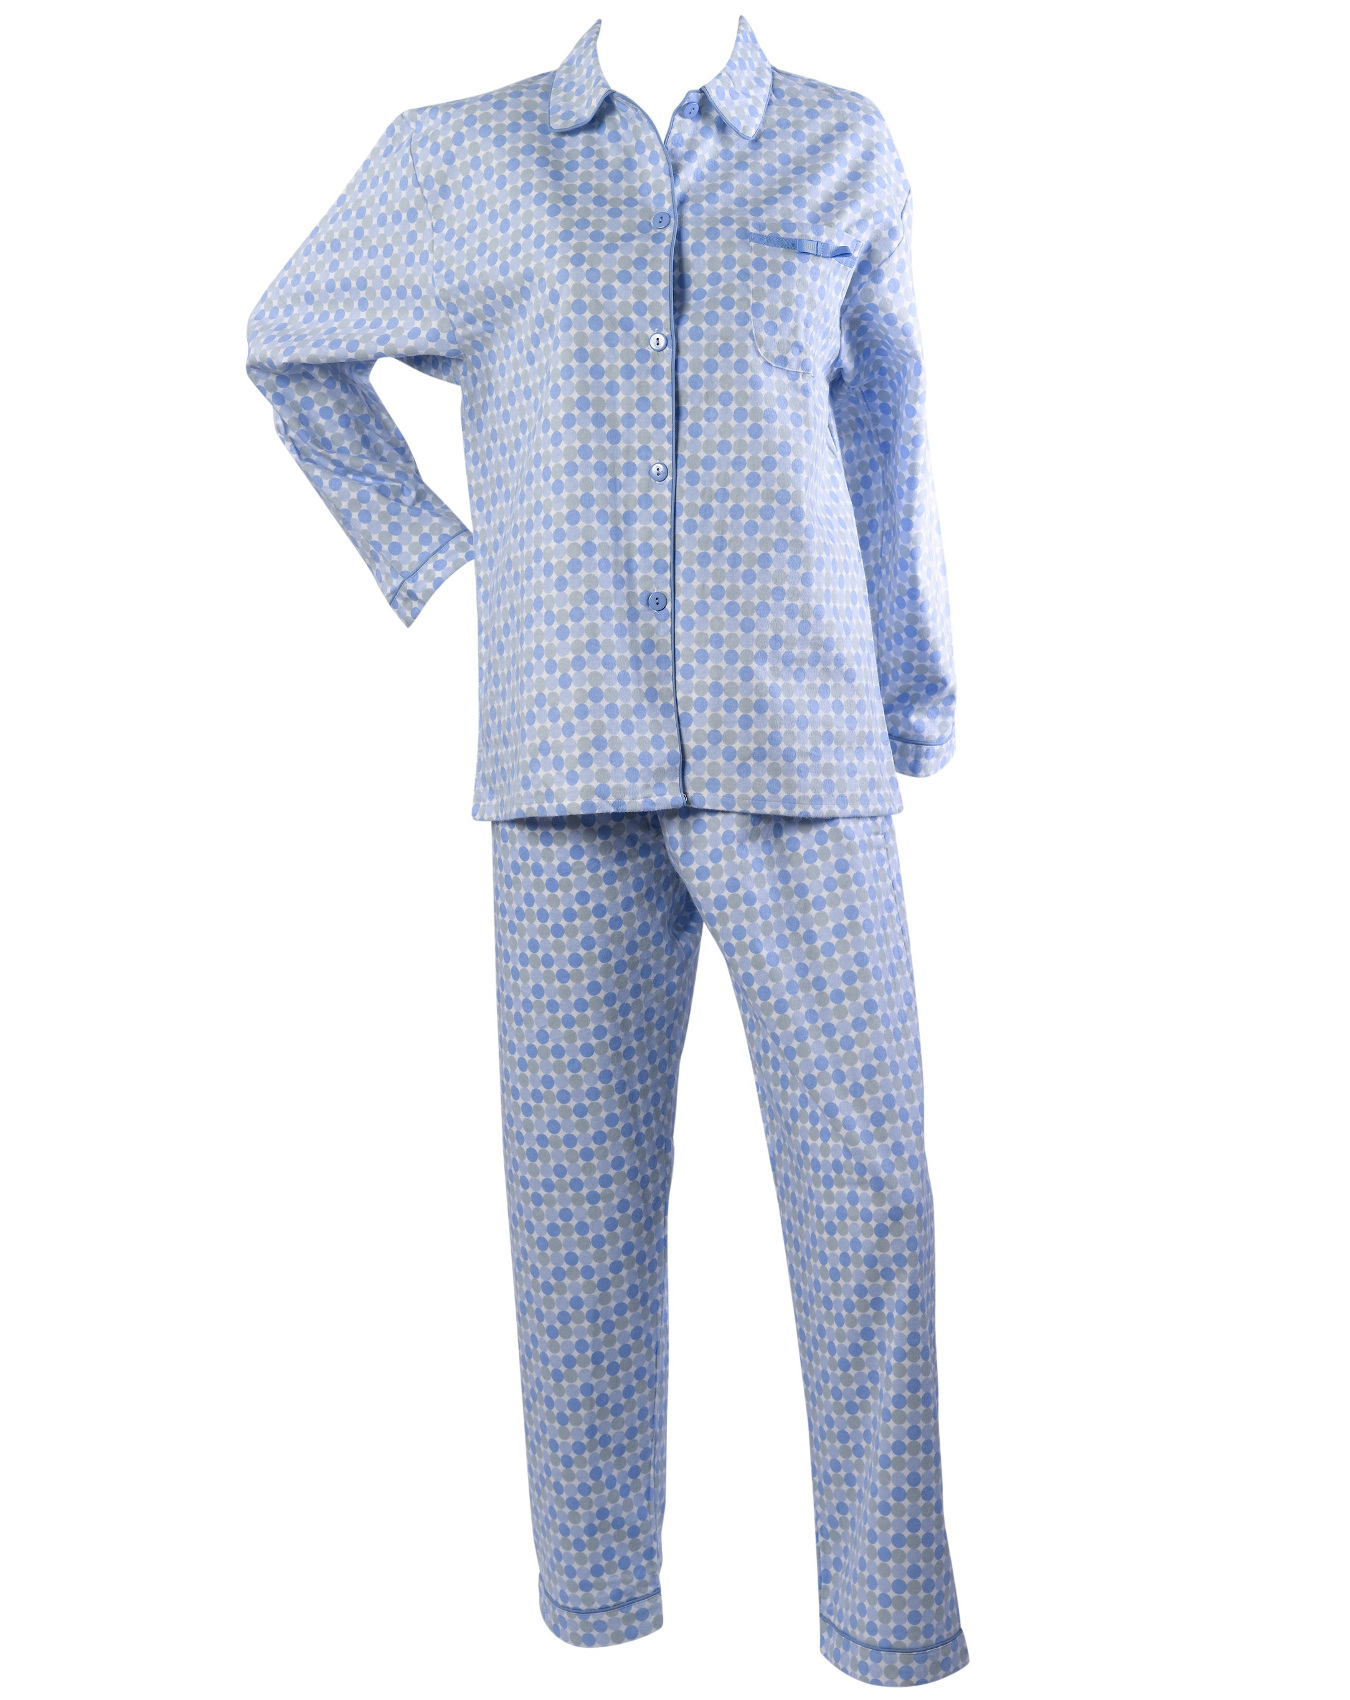 18158a8f7c Womens Polka Dot Pyjamas Ladies Brushed Cotton Button Up Spots PJs  Nightwear Set